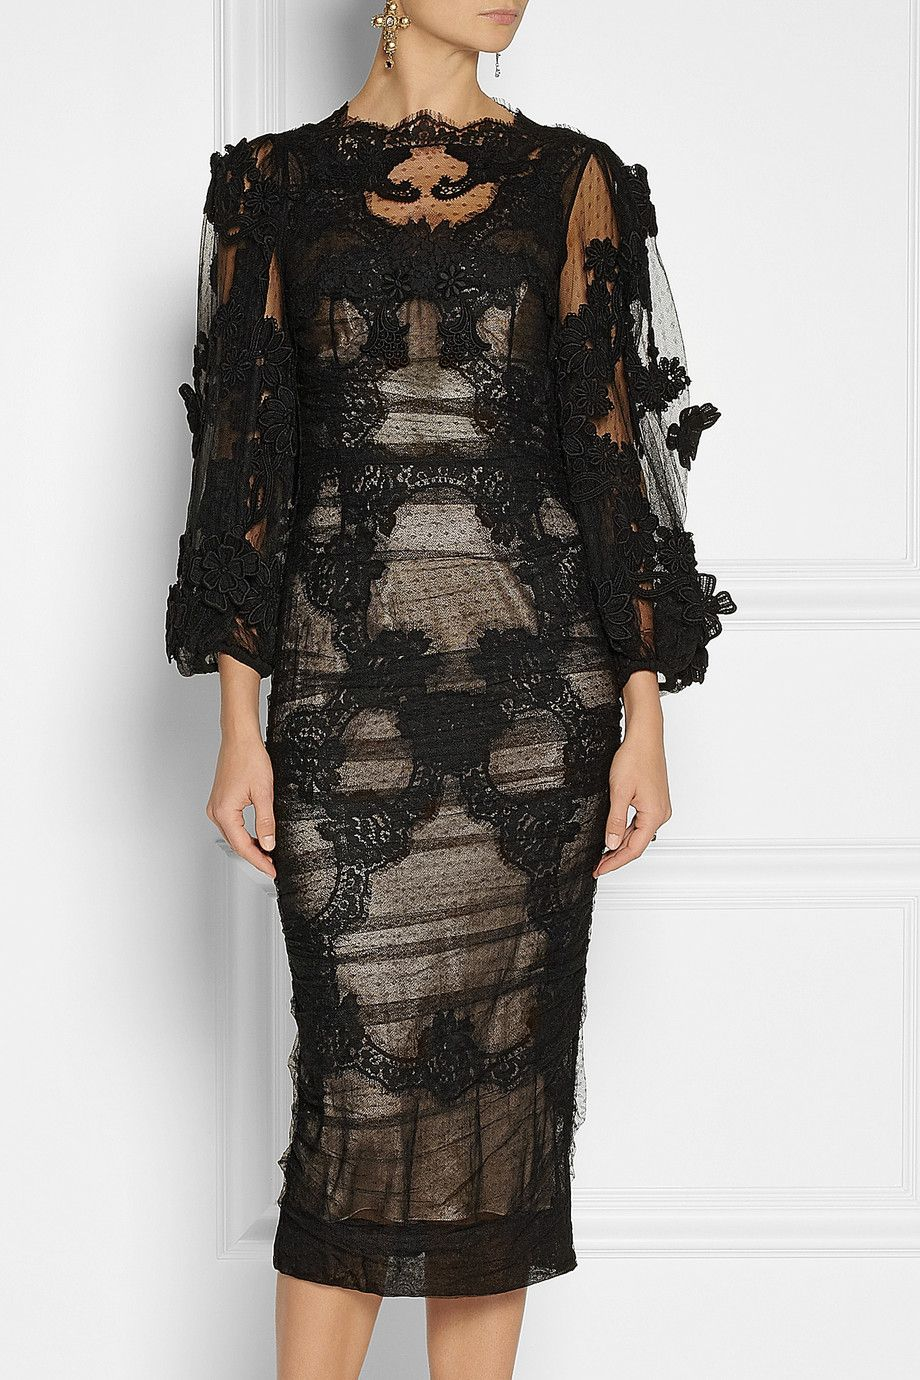 lace and ruched sheer dress - Black Dolce & Gabbana zWbLDmqI